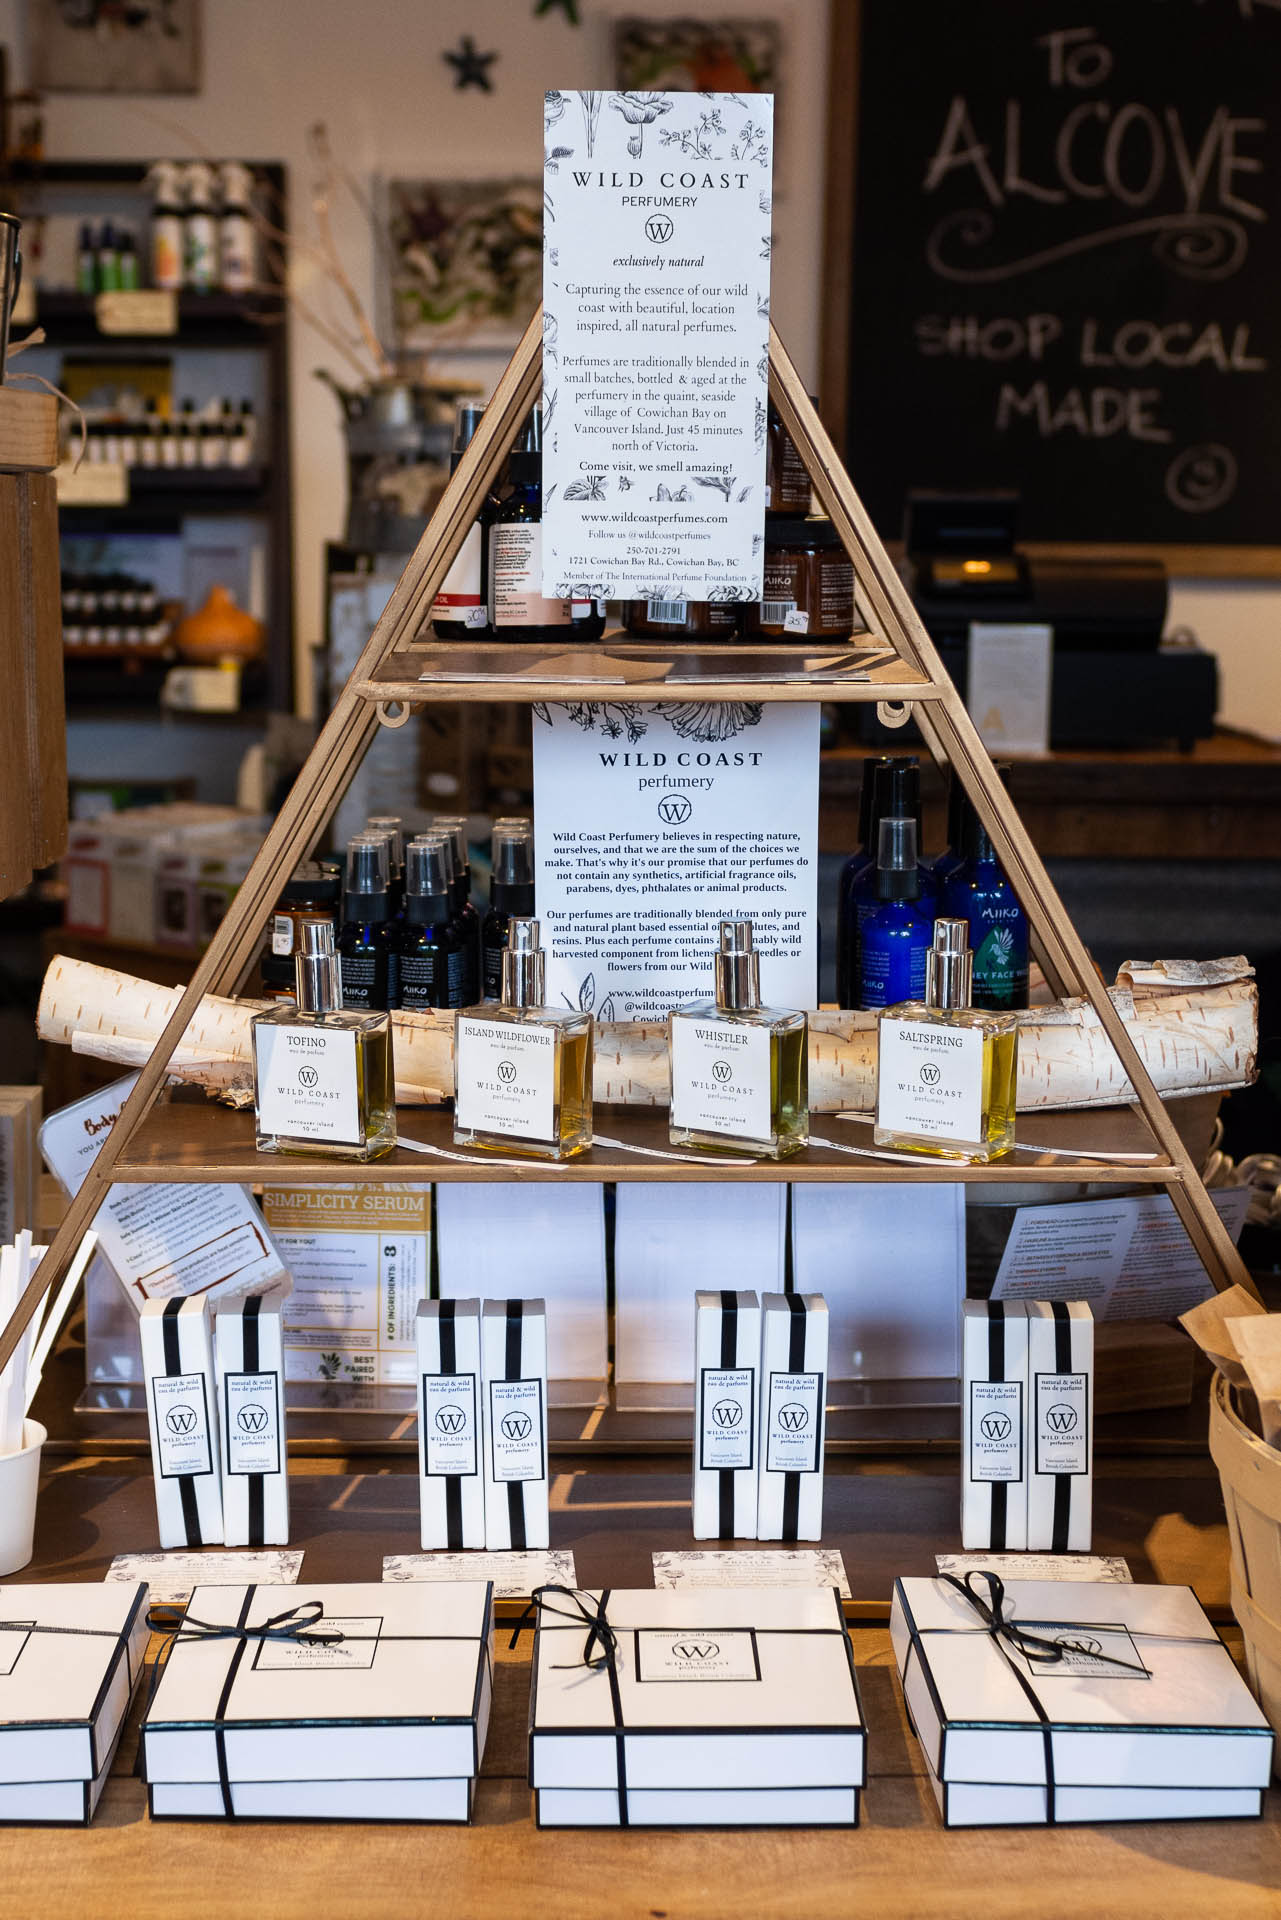 Healingscents Essential Oils - Alcove Homegrown Living